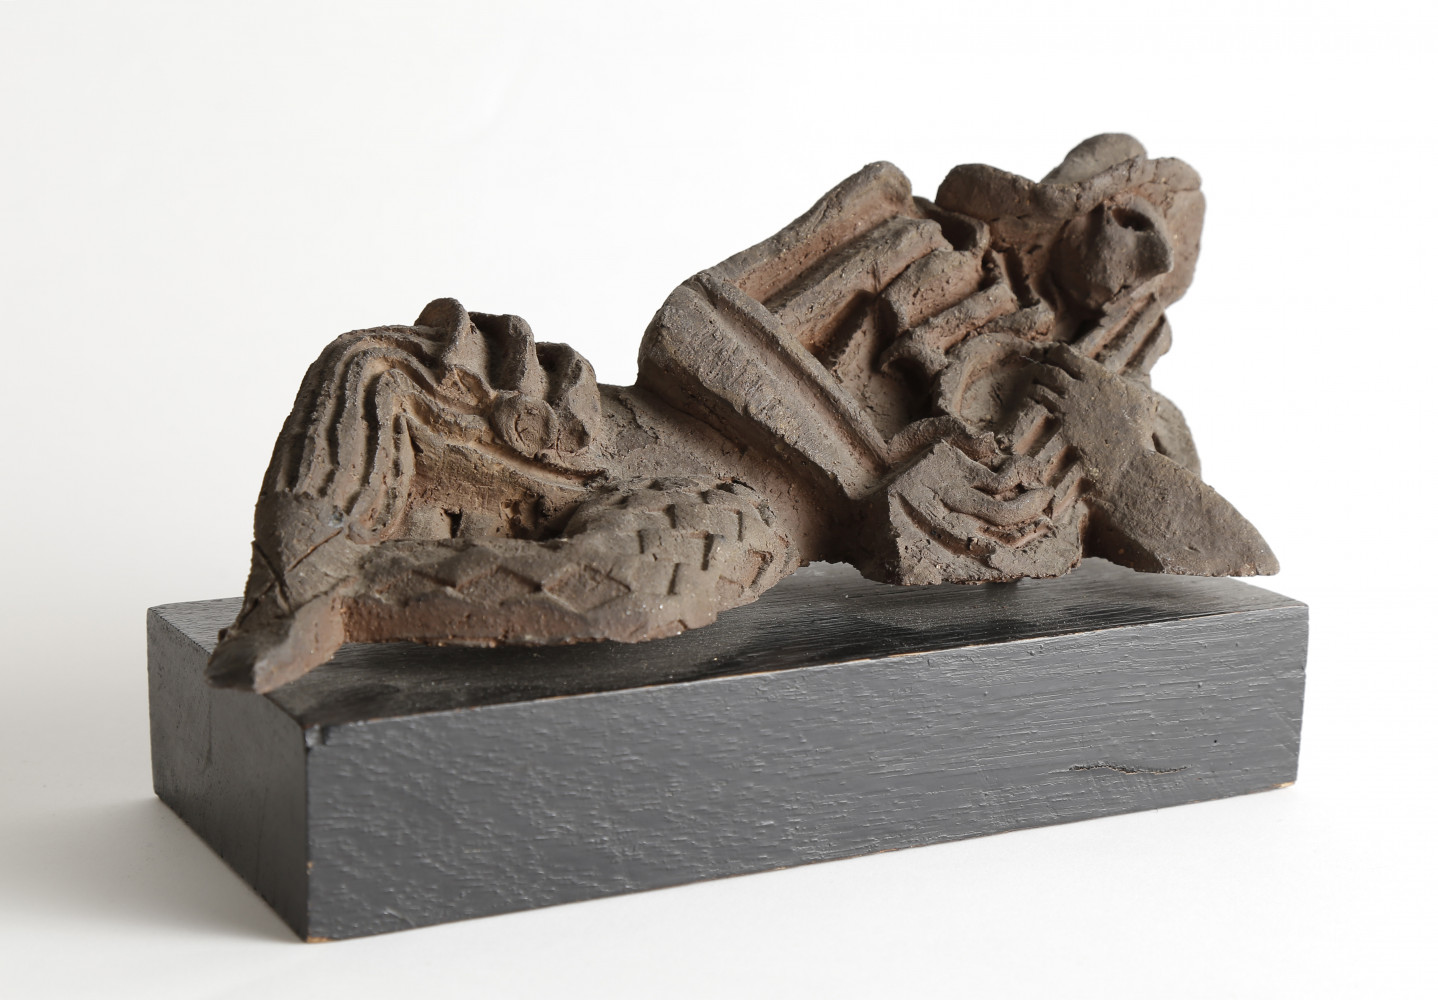 Arlequin Couché by Ossip Zadkine